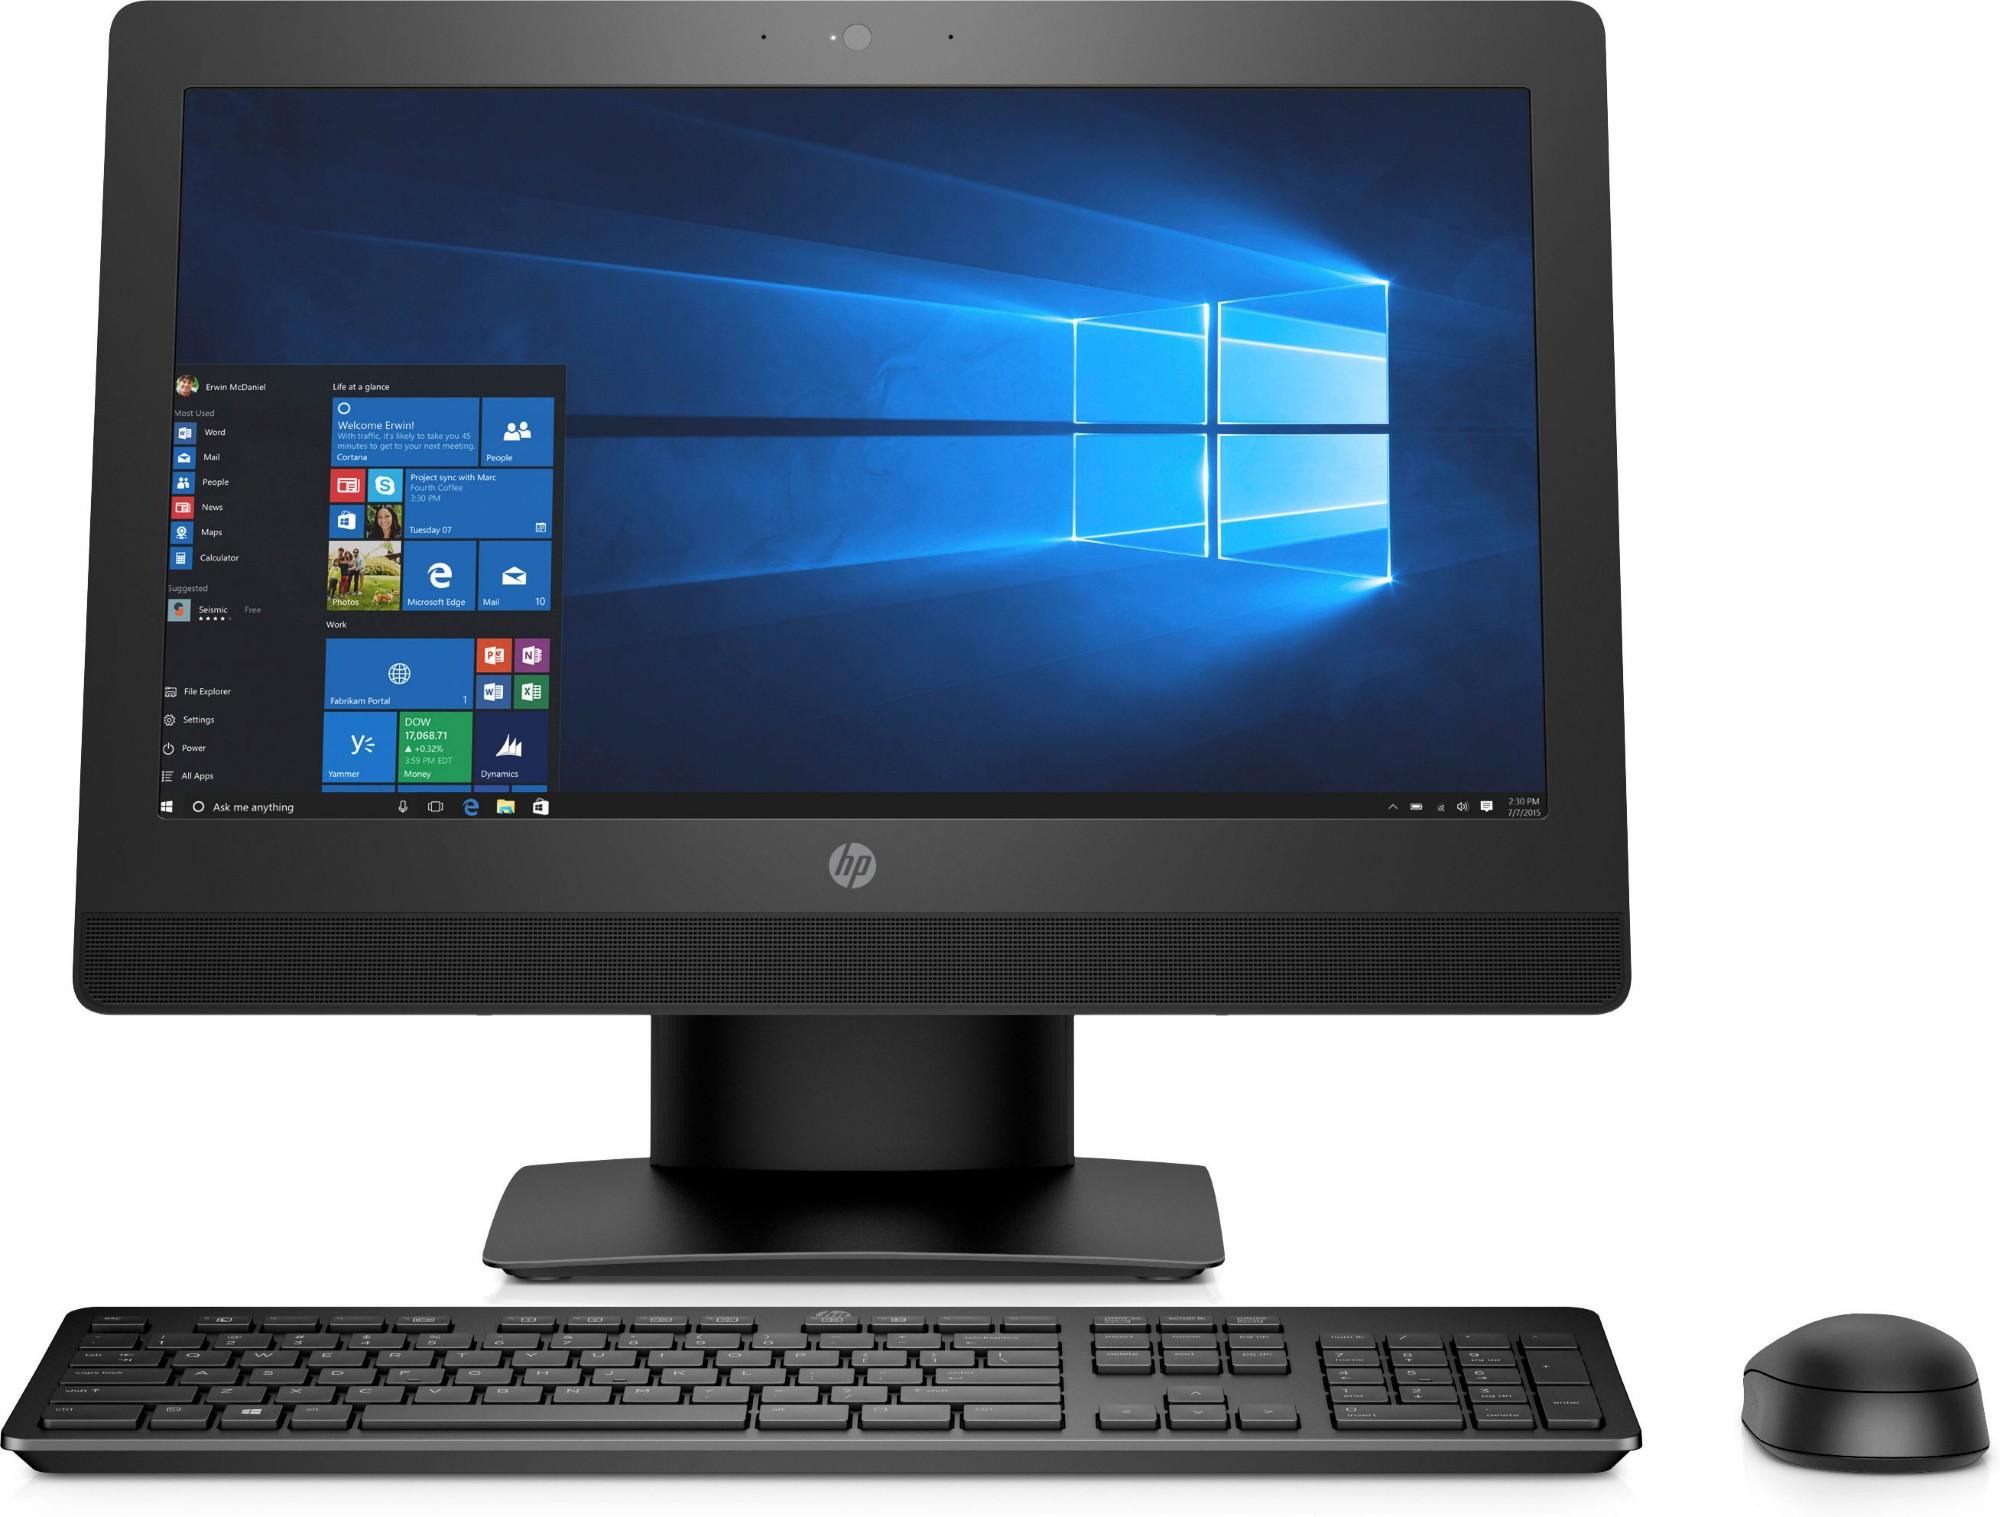 HP ProOne 400 G3 Aio 2KL21EA# ABU Core i5-7500 4GB 256GB SSD